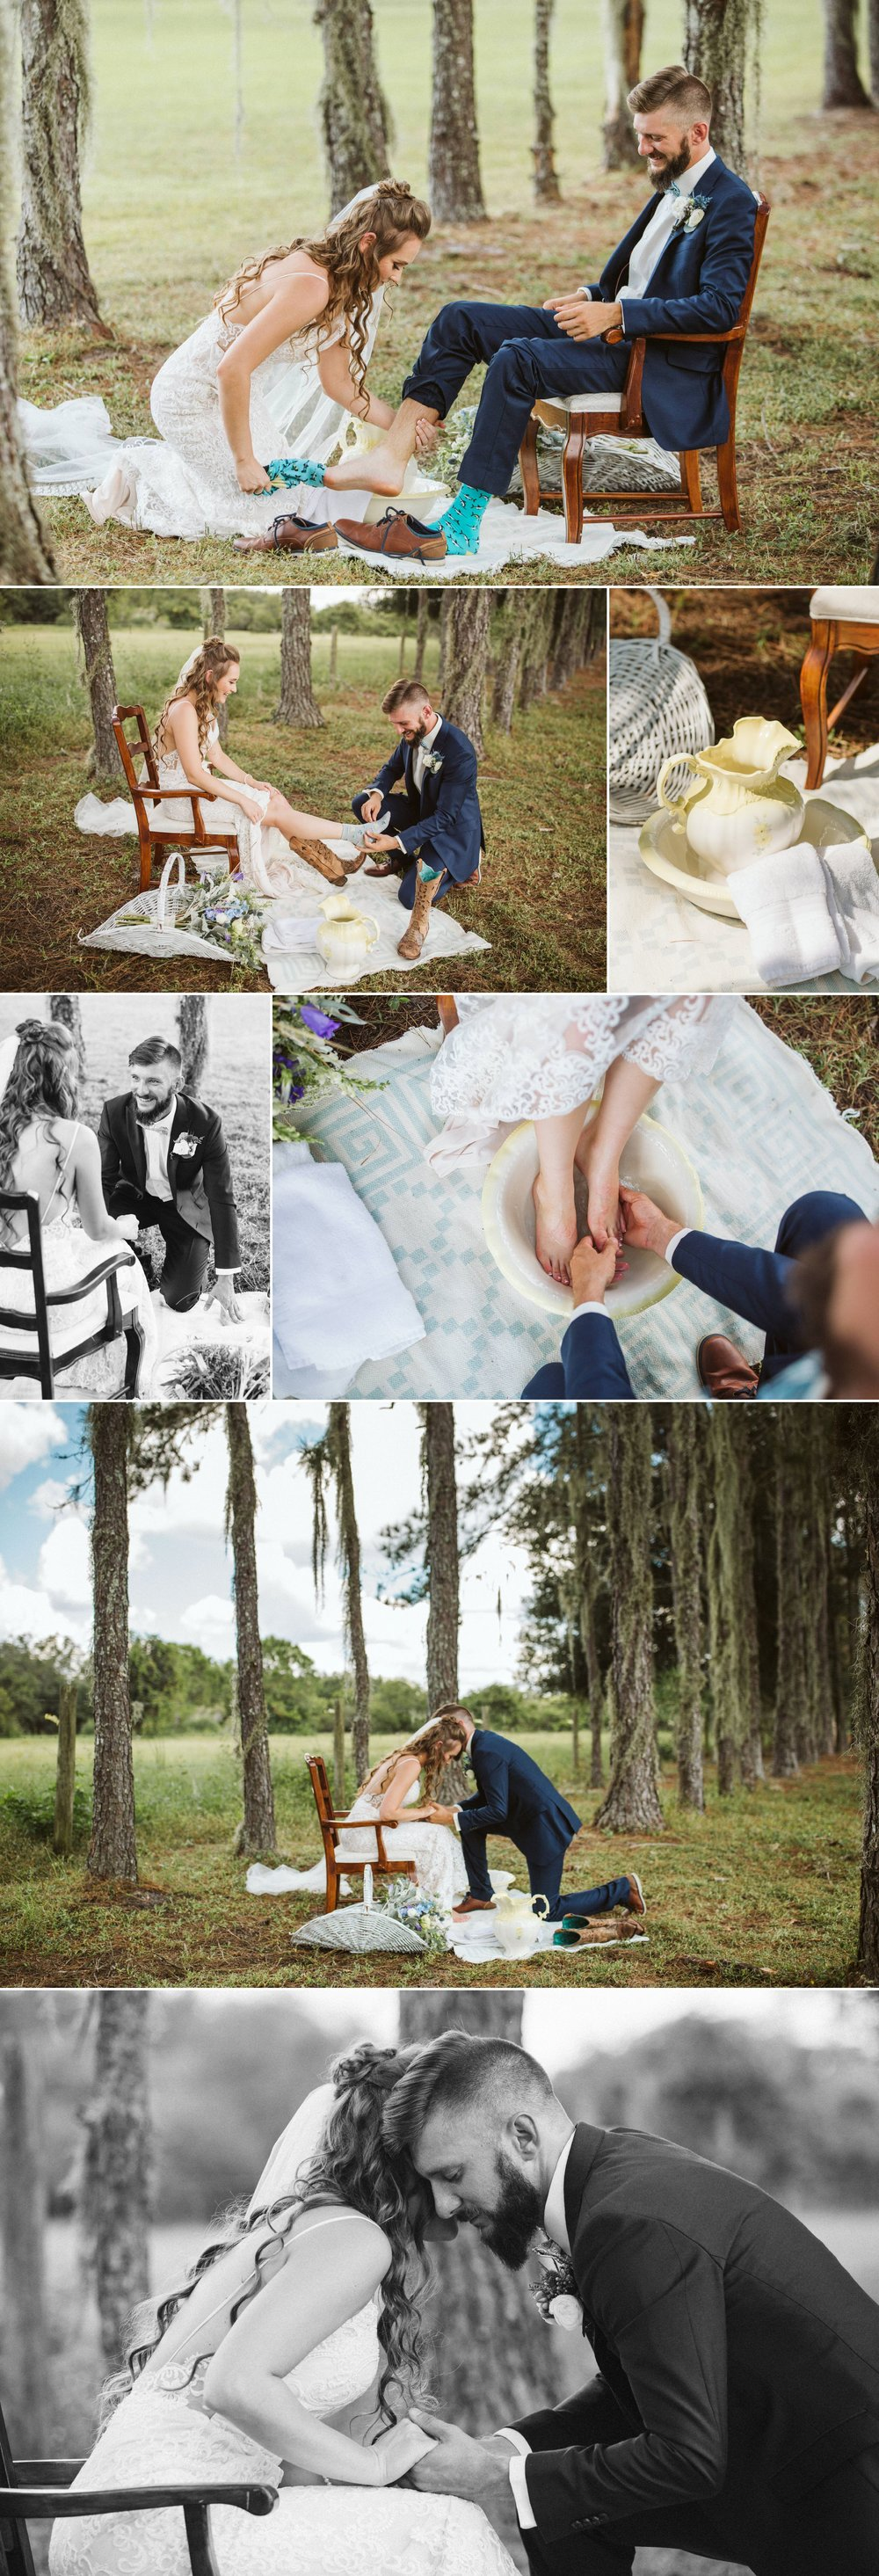 Romantic Floral Outdoor Field Chapel Wedding- Sarasota Florida- Courtney & Isaac10.jpg